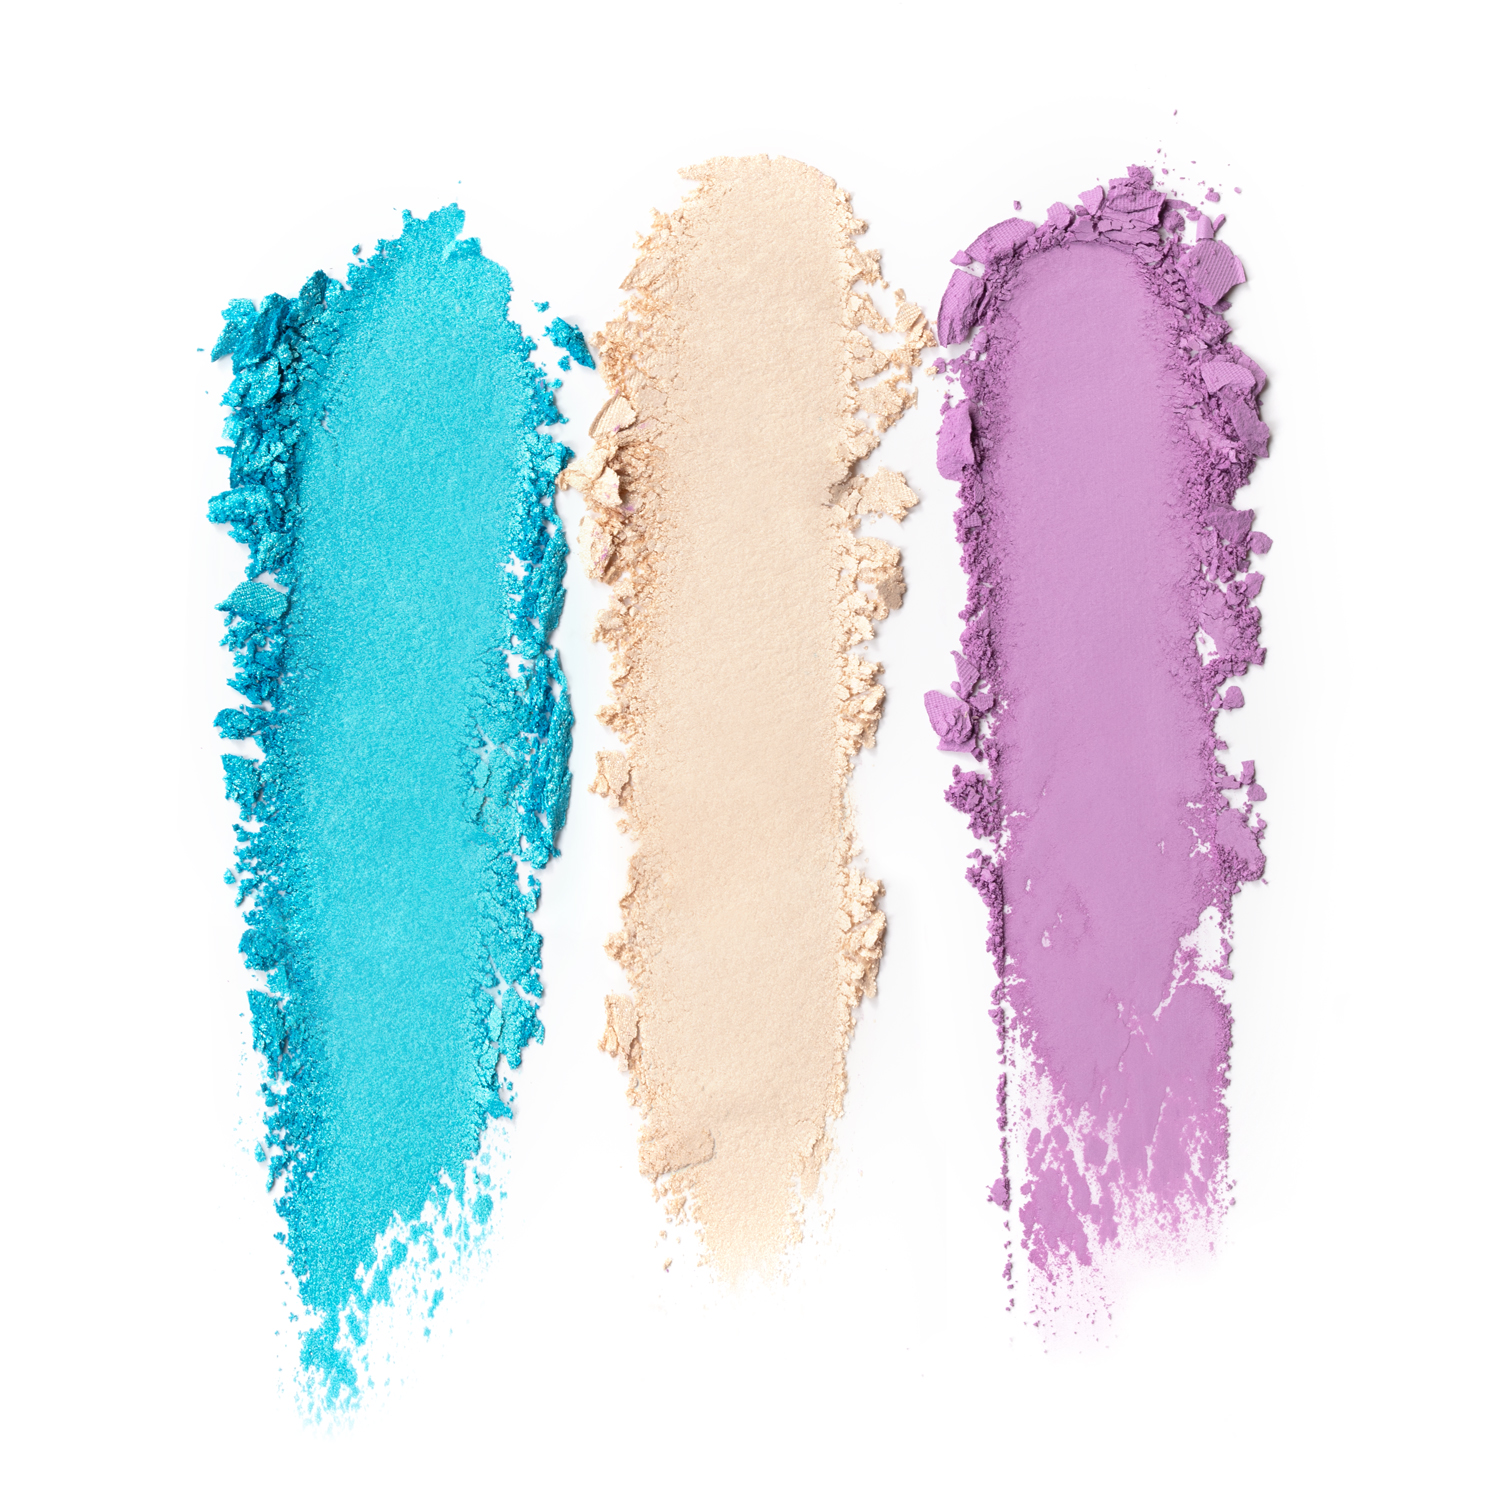 TEAM BLISS Eye Shadow Palette s2.jpg